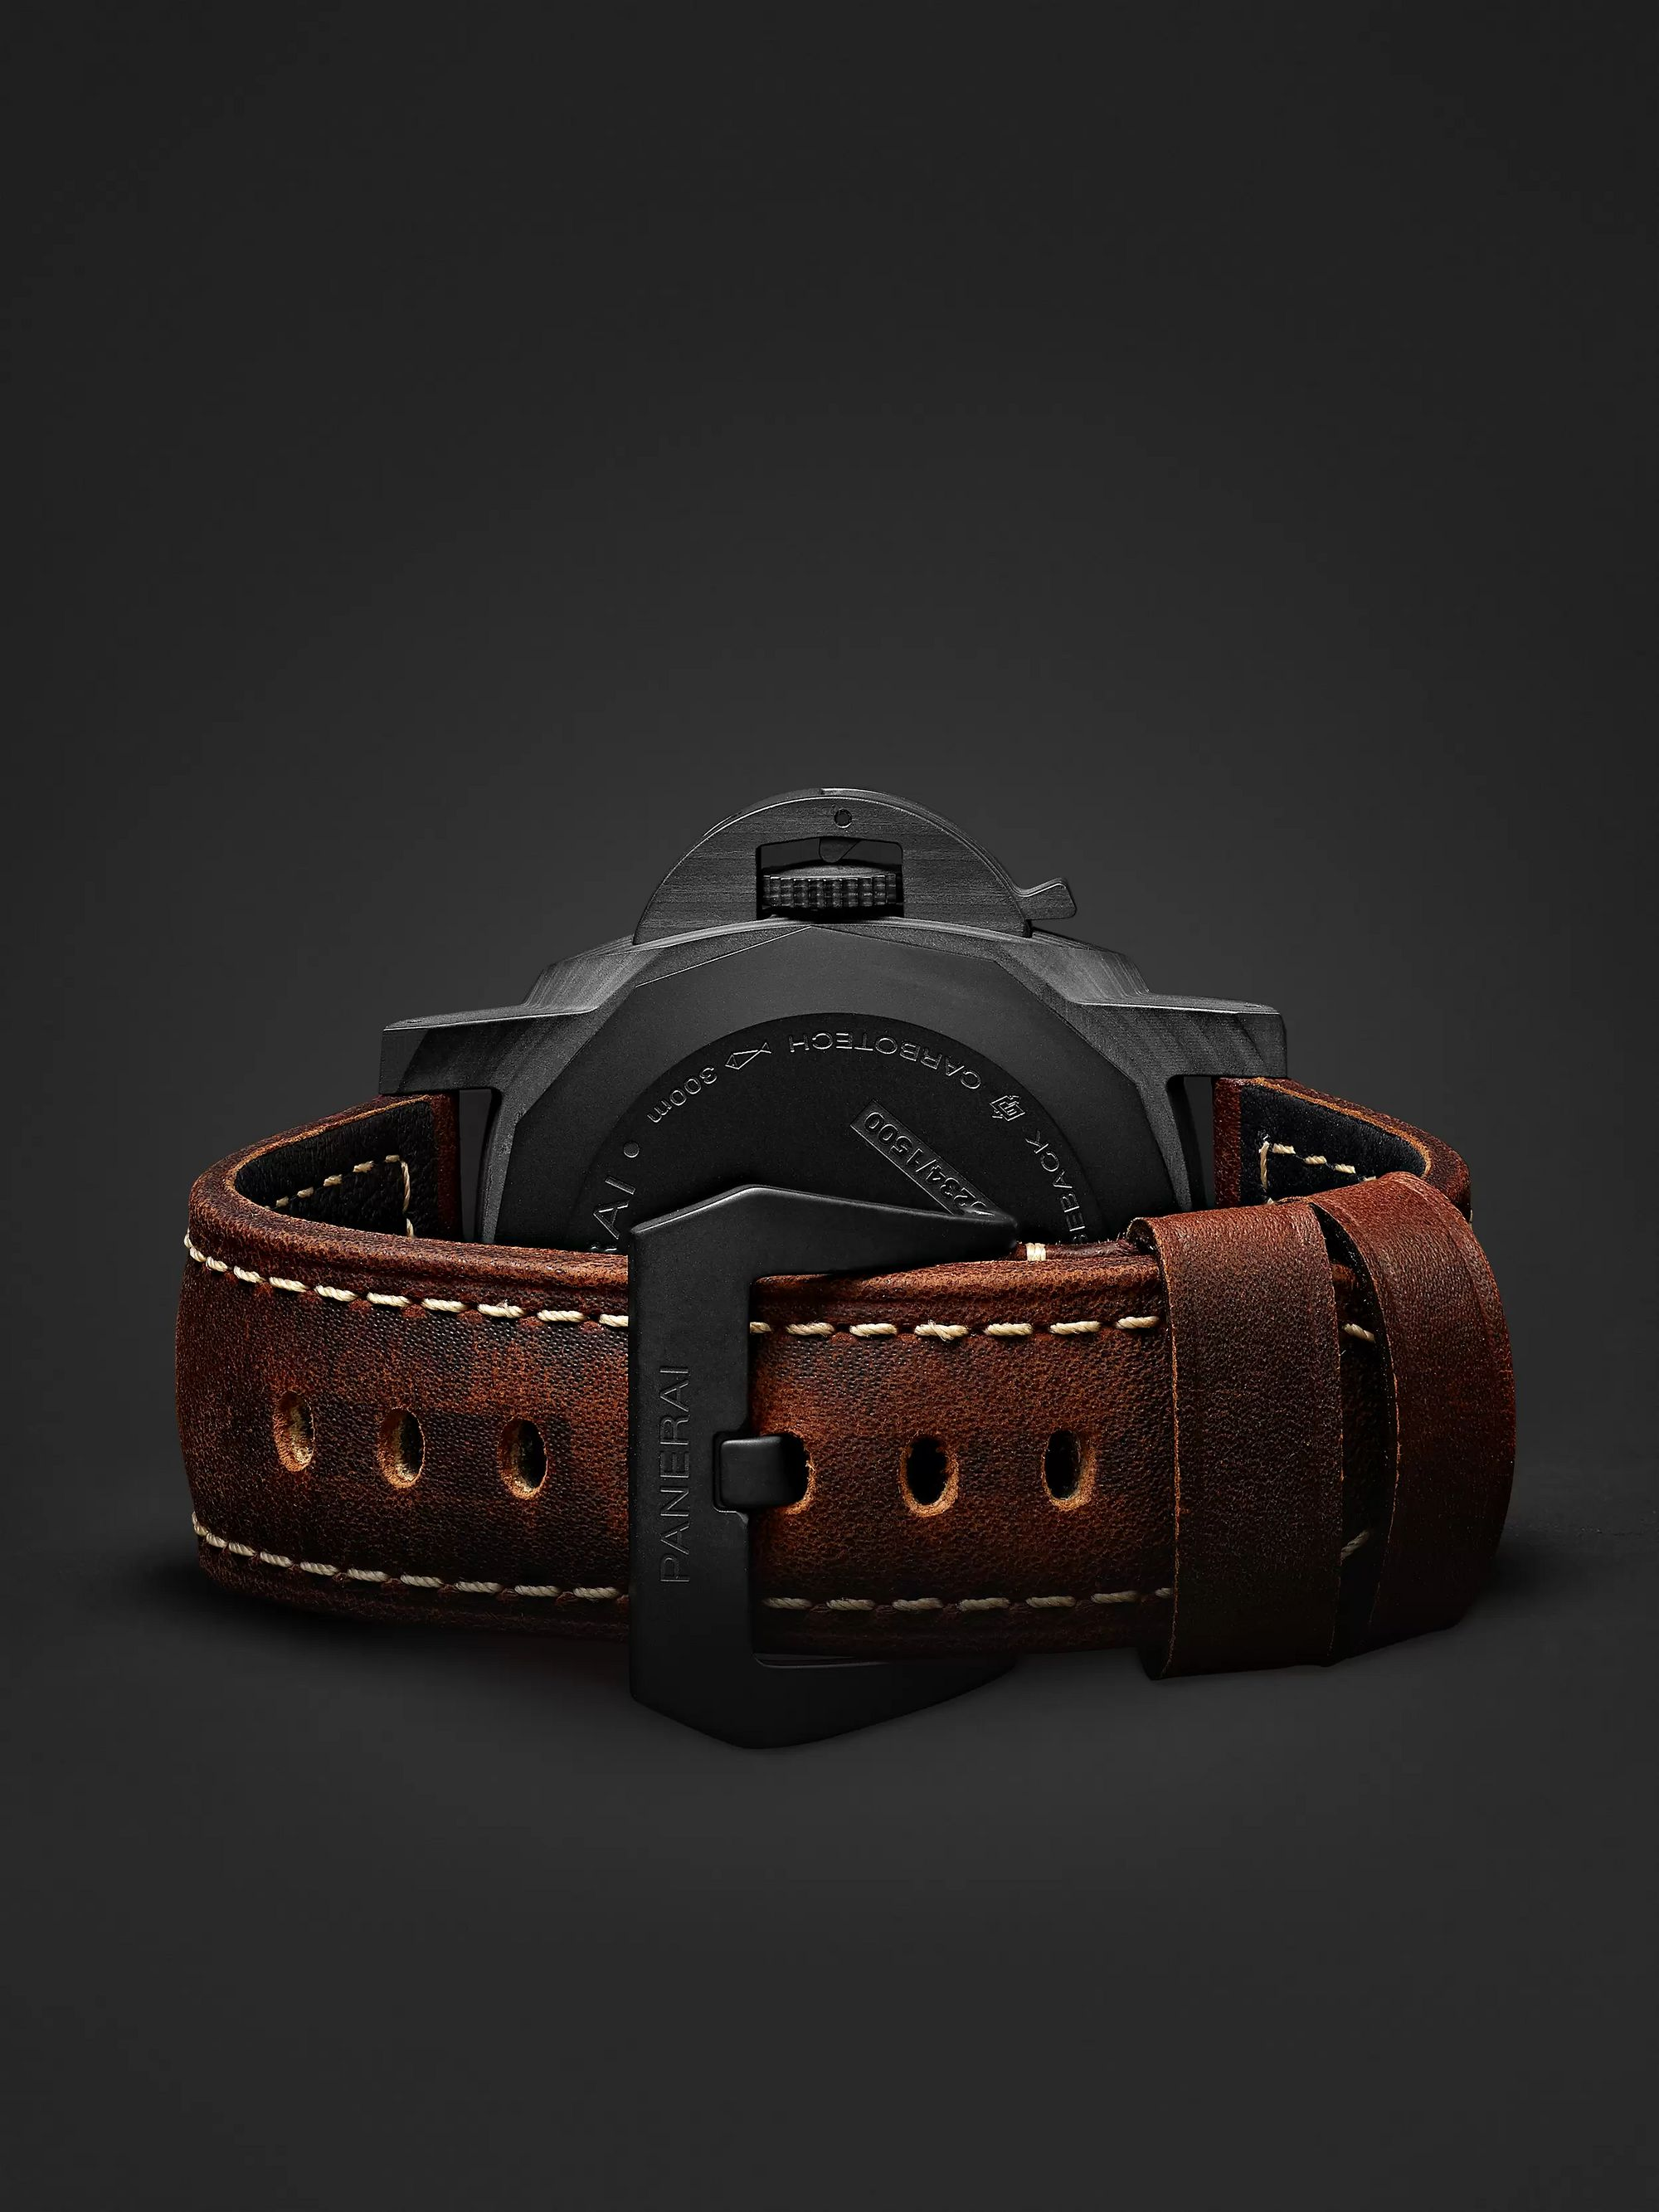 Panerai Luminor Marina 1950 3 Days Automatic 44mm Carbotech and Leather Watch, Ref. No. PAM00661